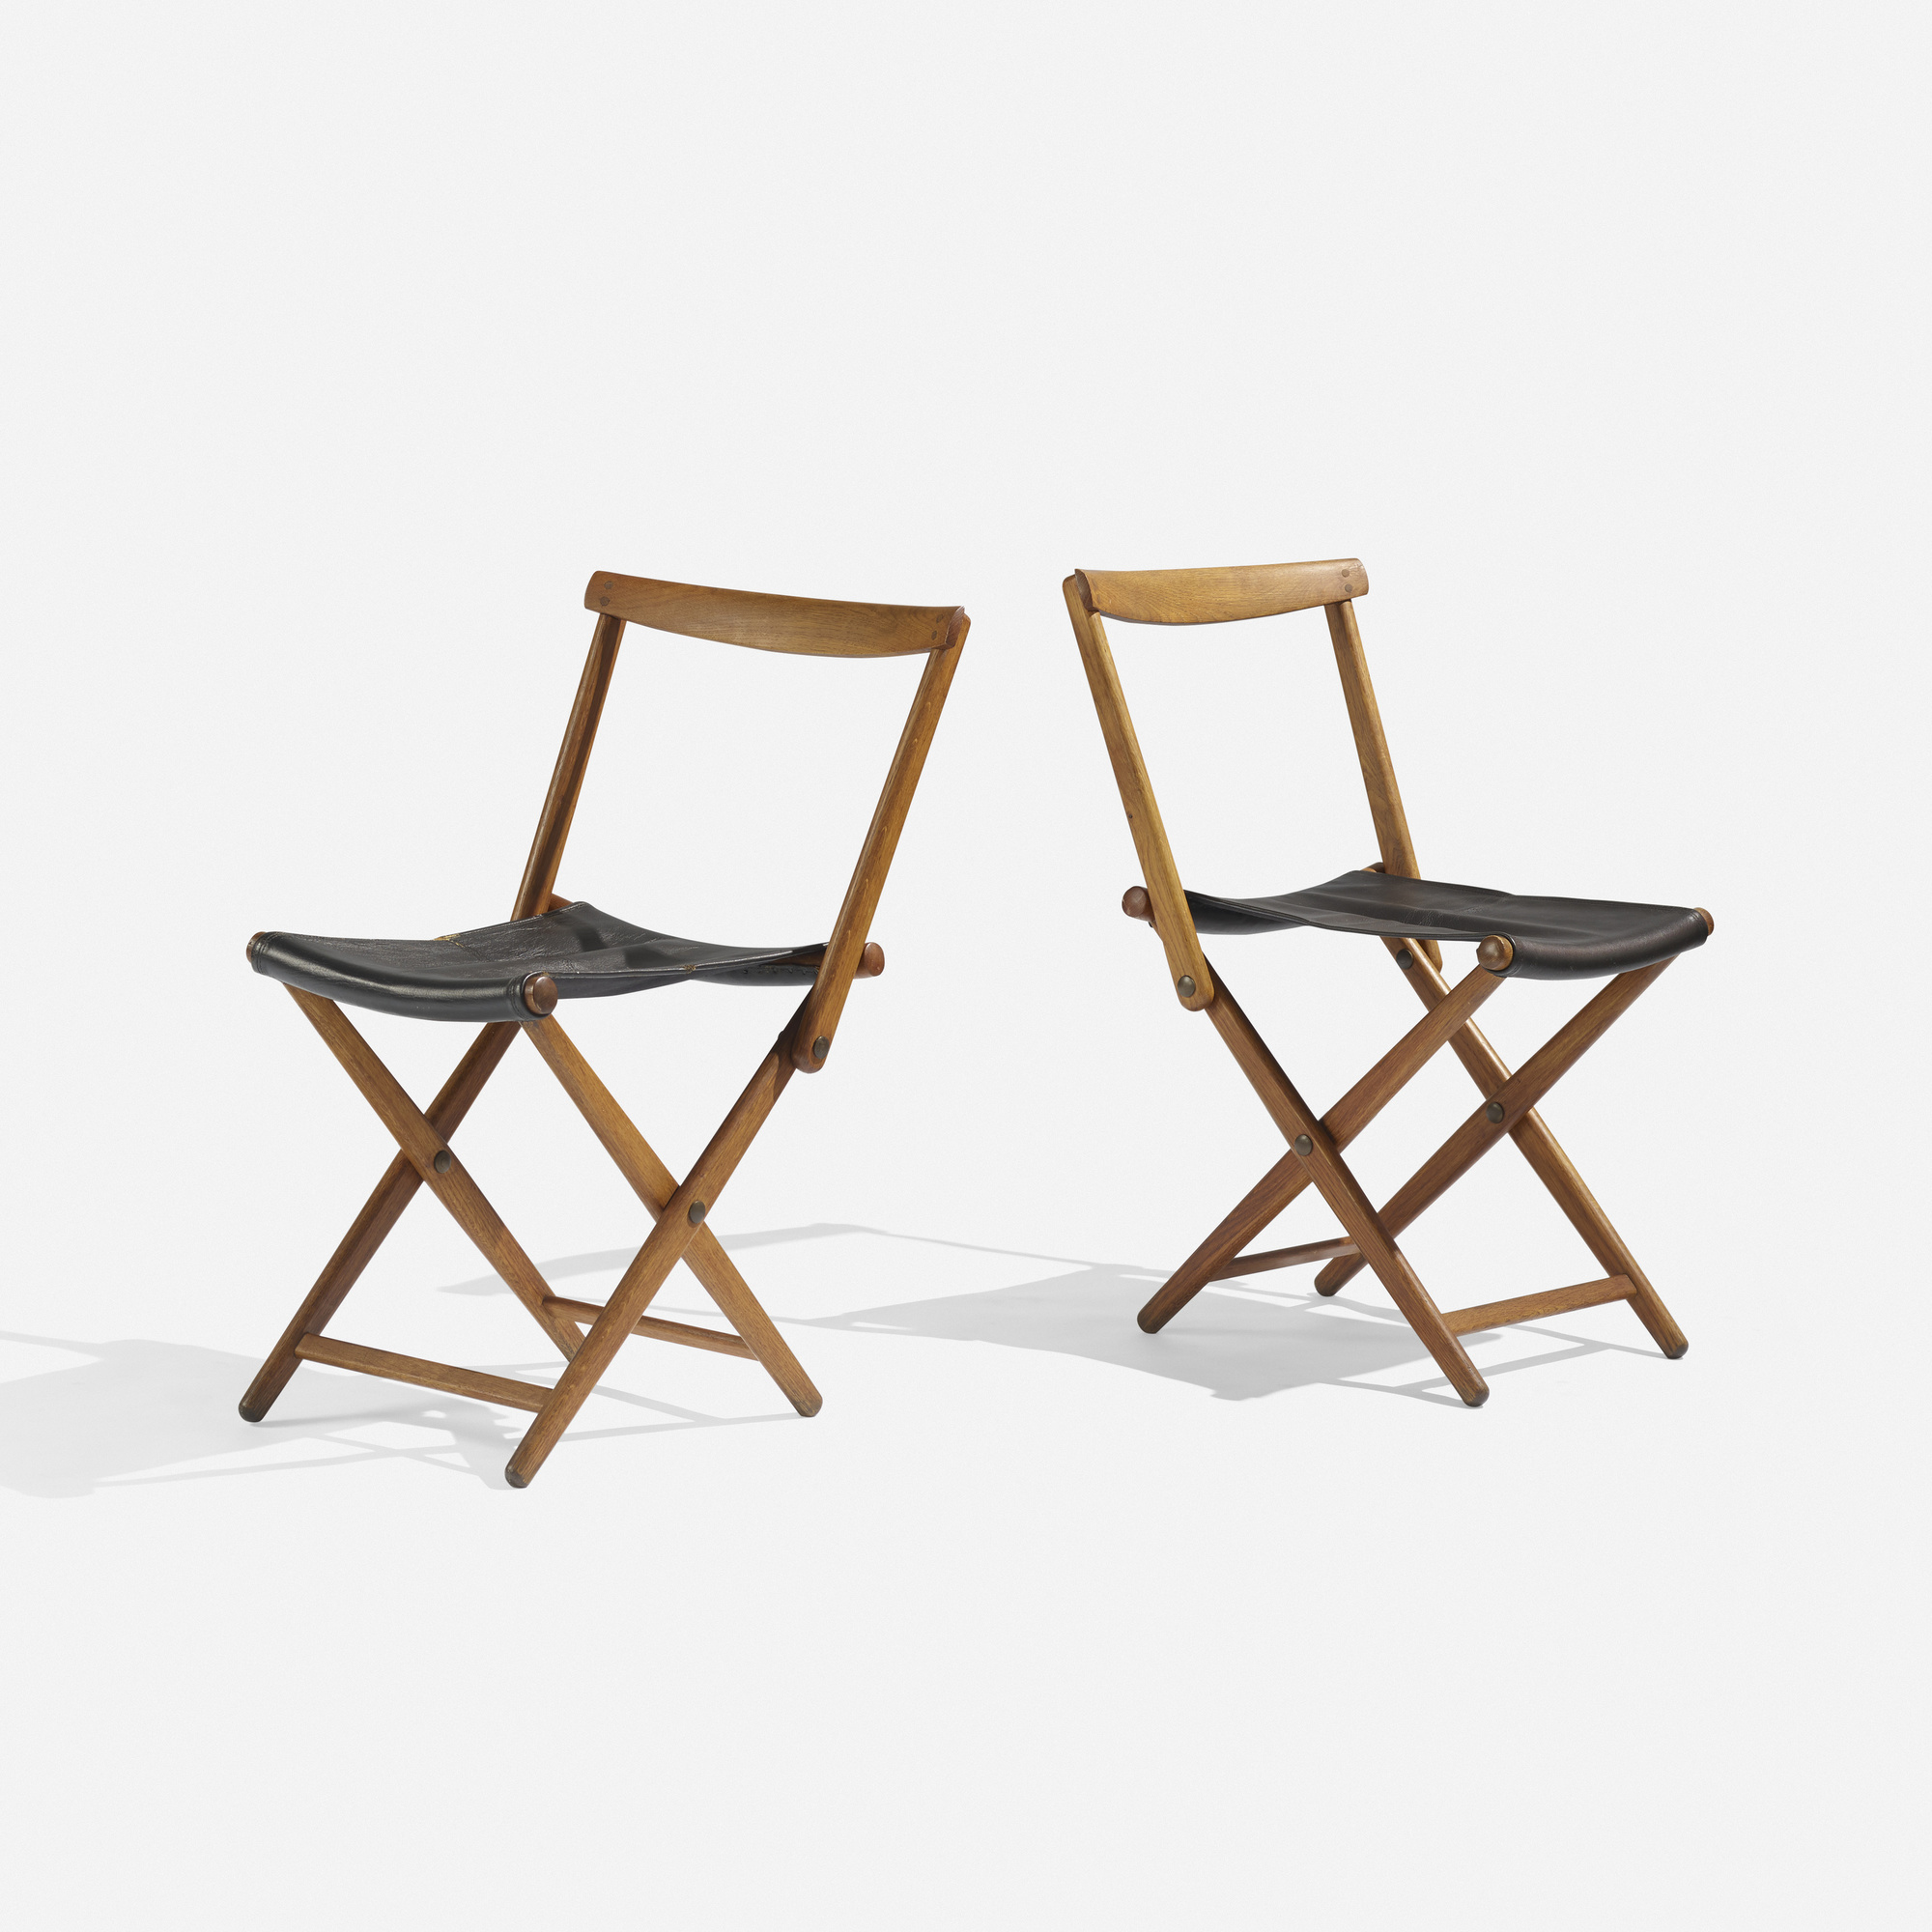 103 Torsten Johansson folding chairs pair Scandinavian